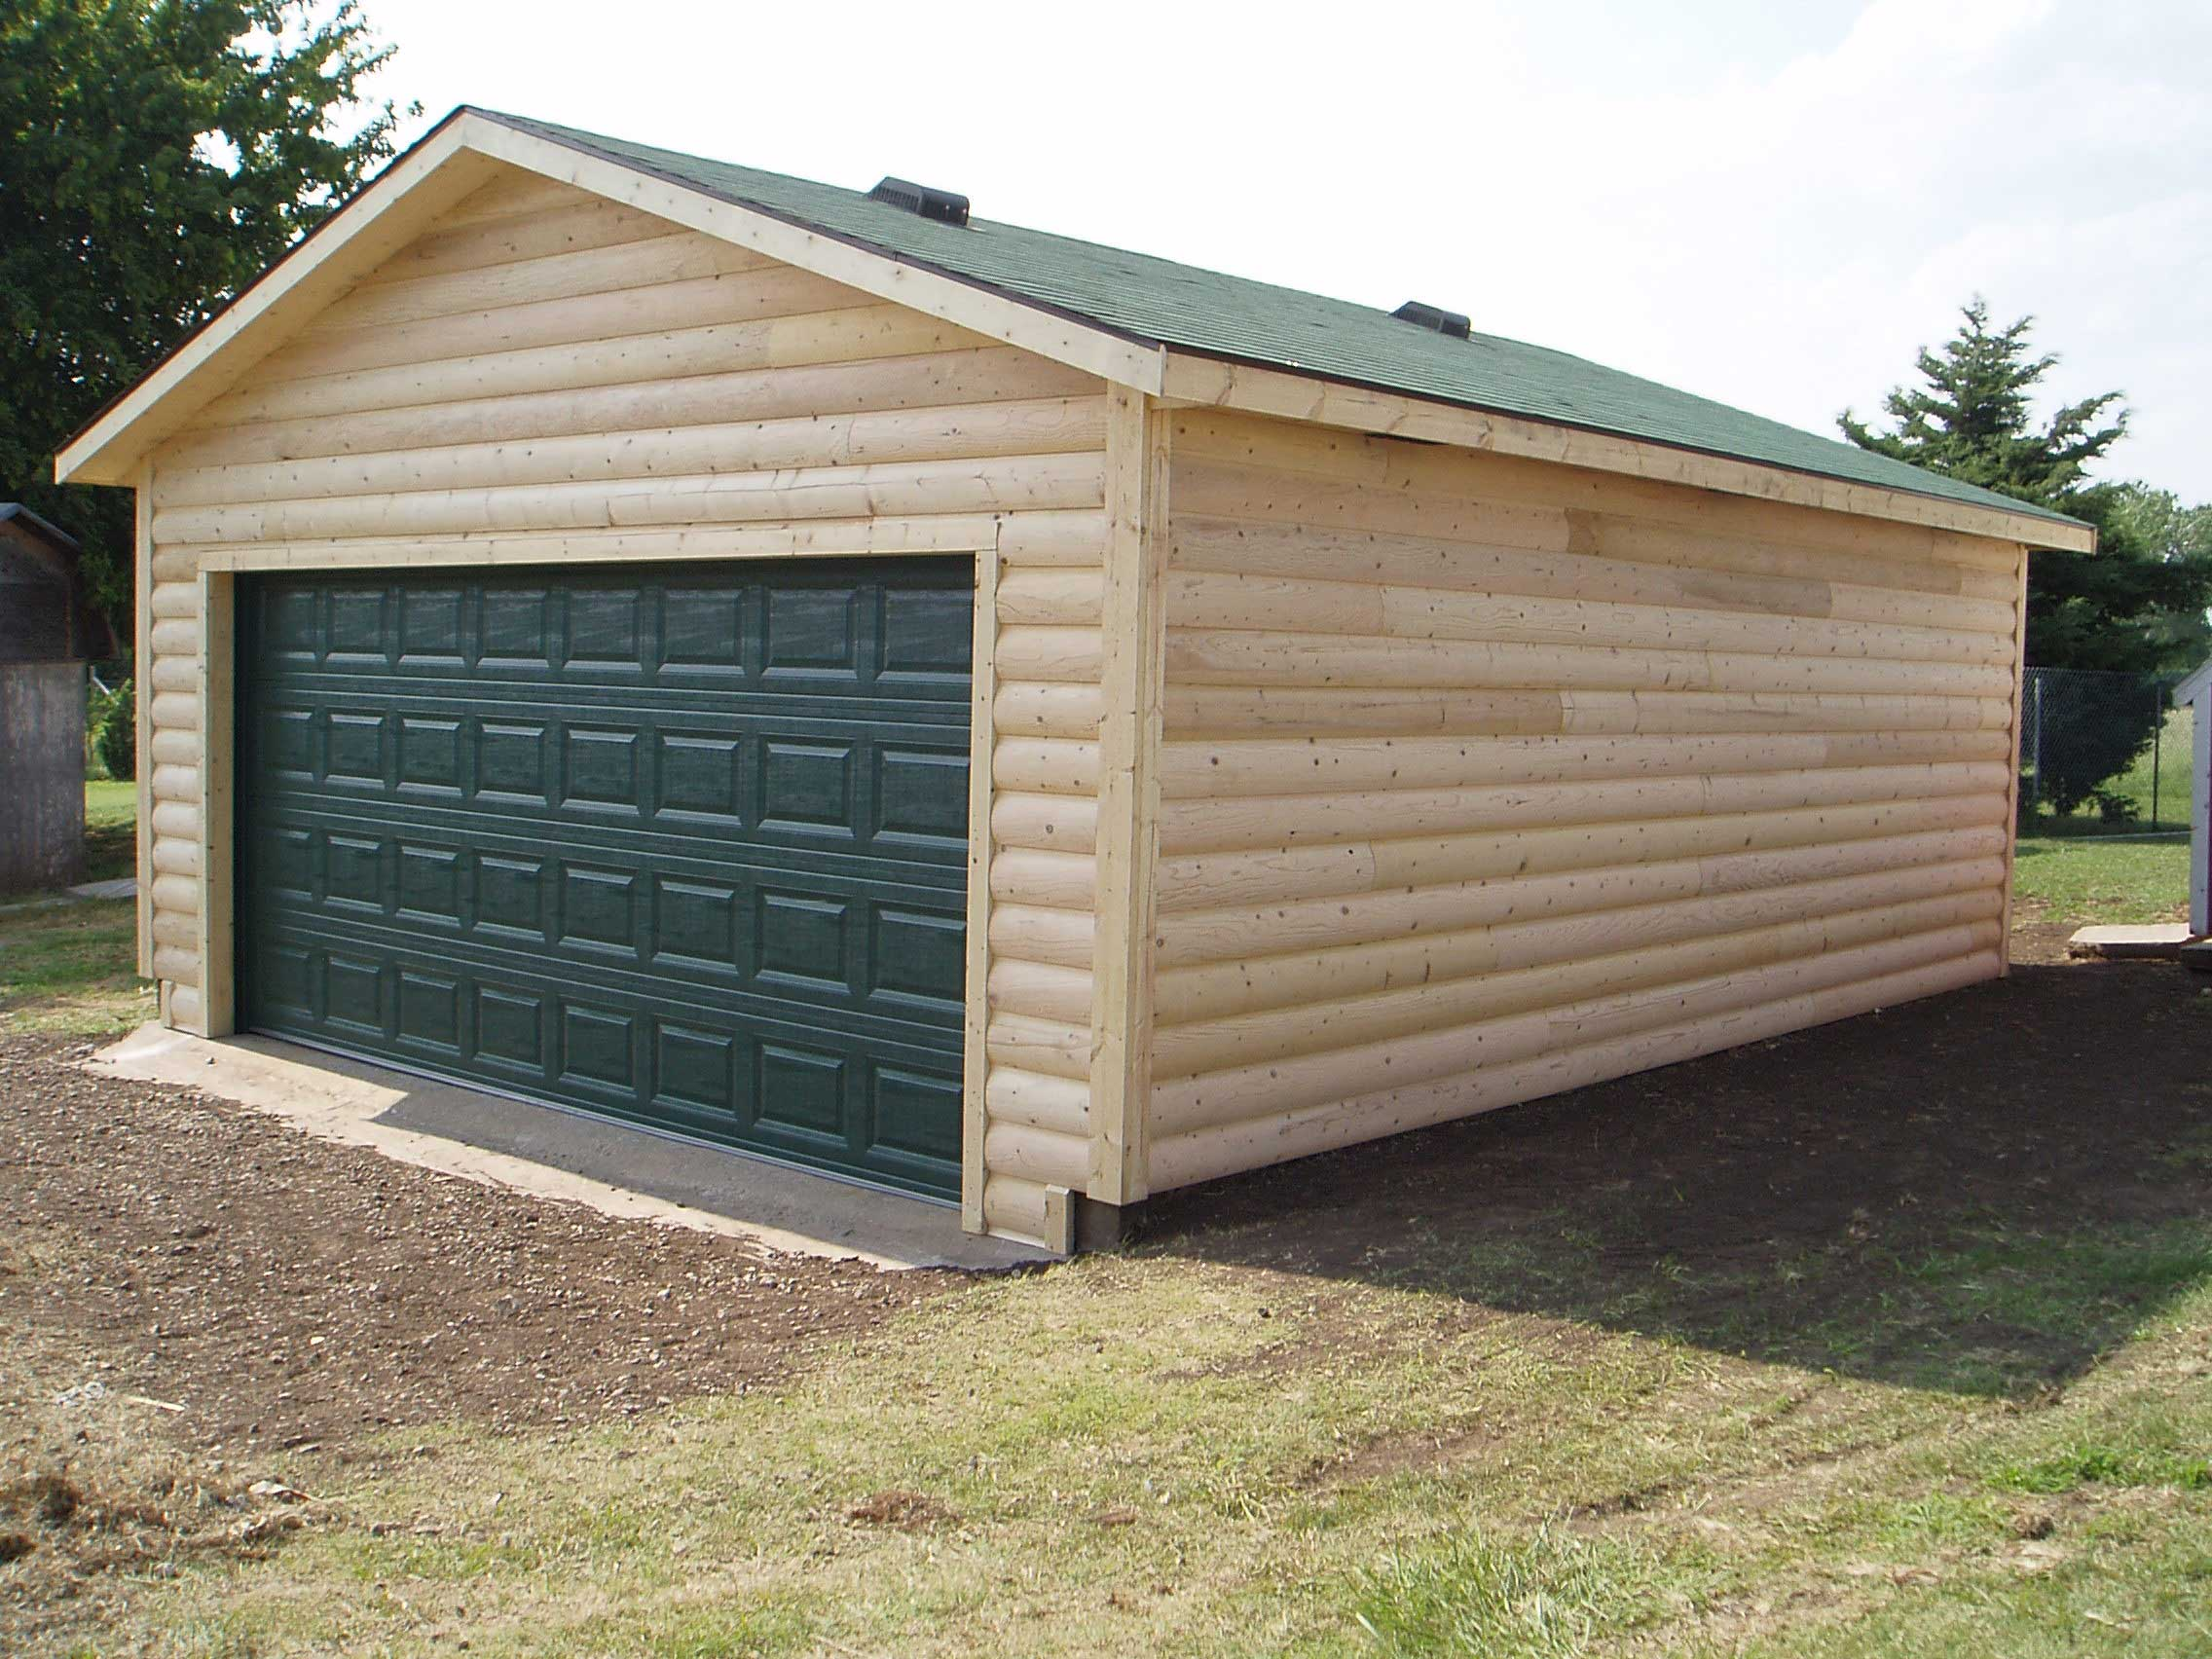 4 log sided garage 20x24x8 10187 kansas outdoor structures for Log cabin garages for sale